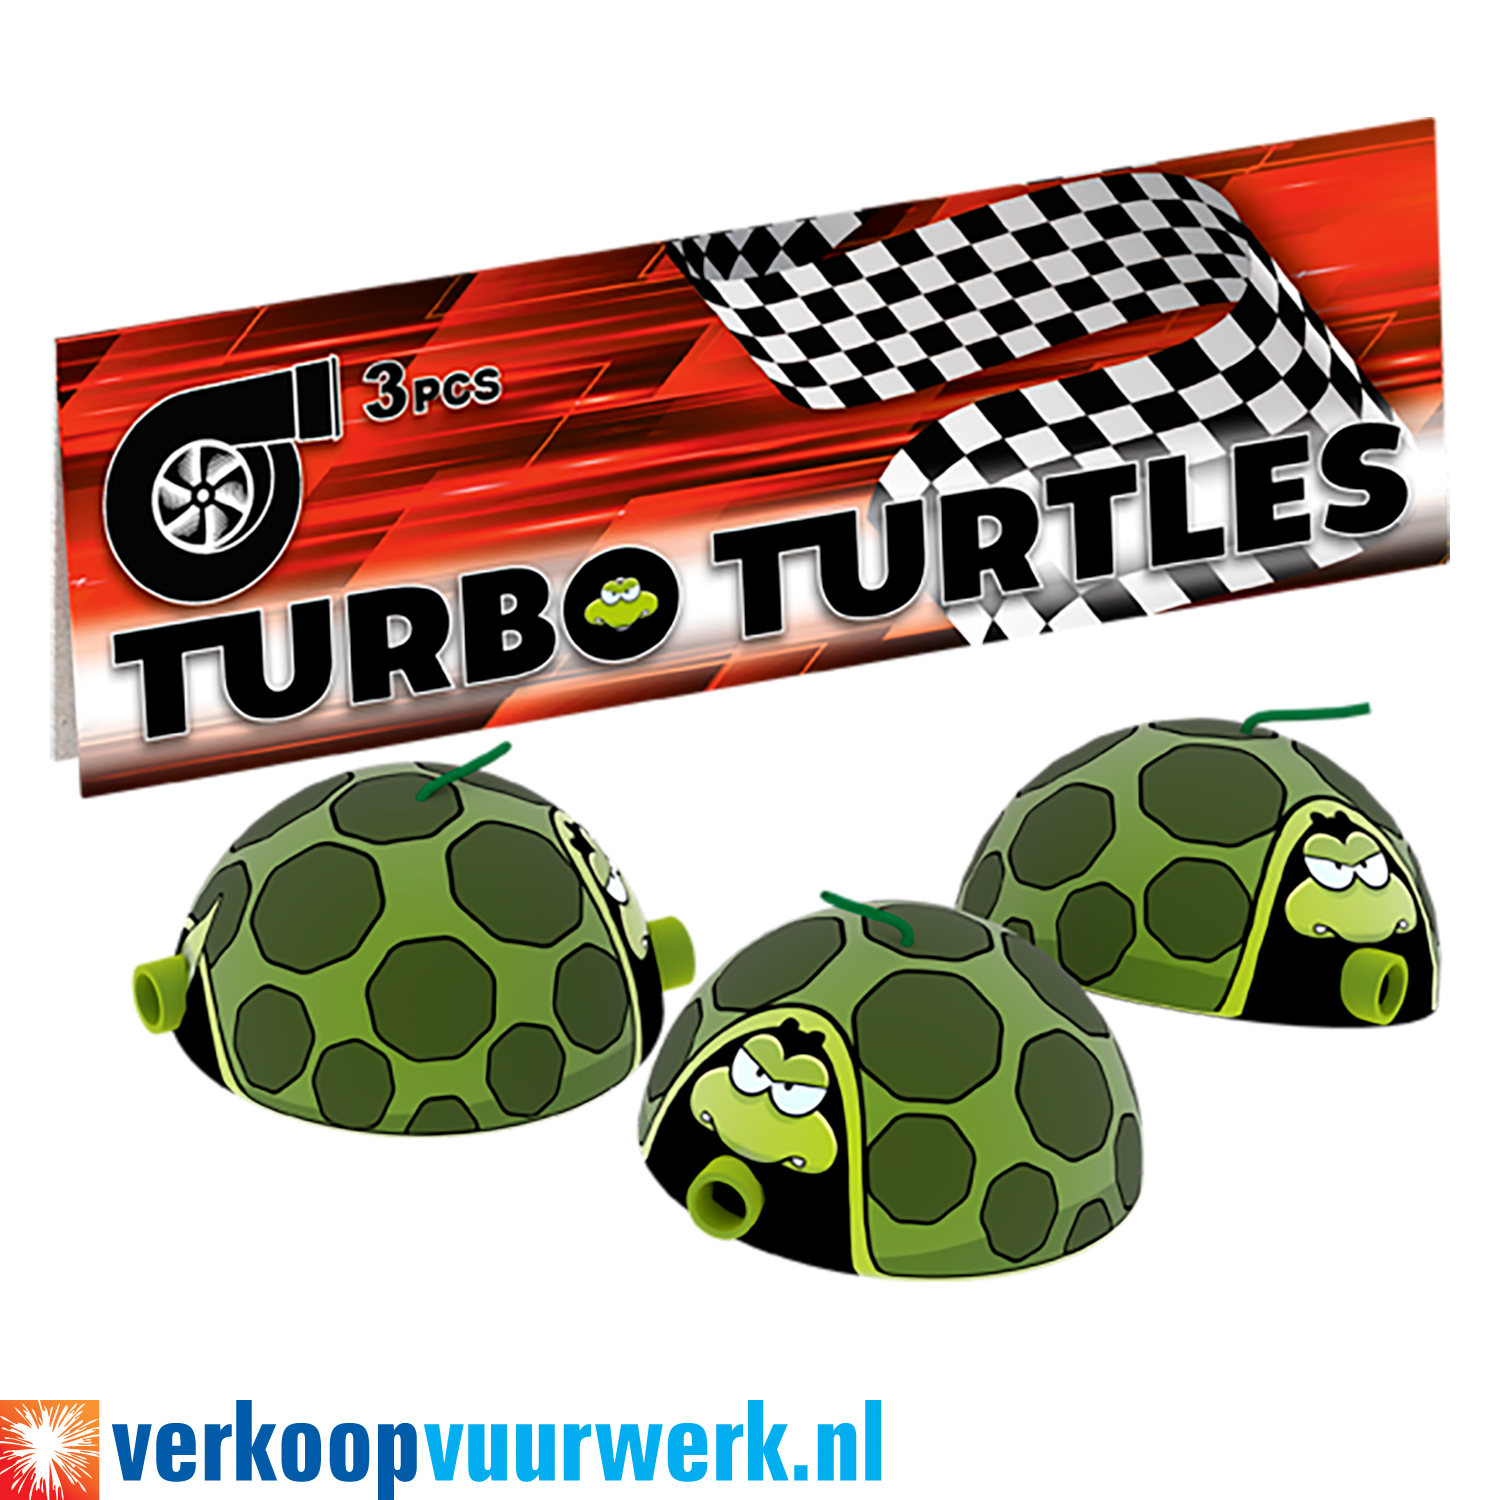 Turbo Turtles